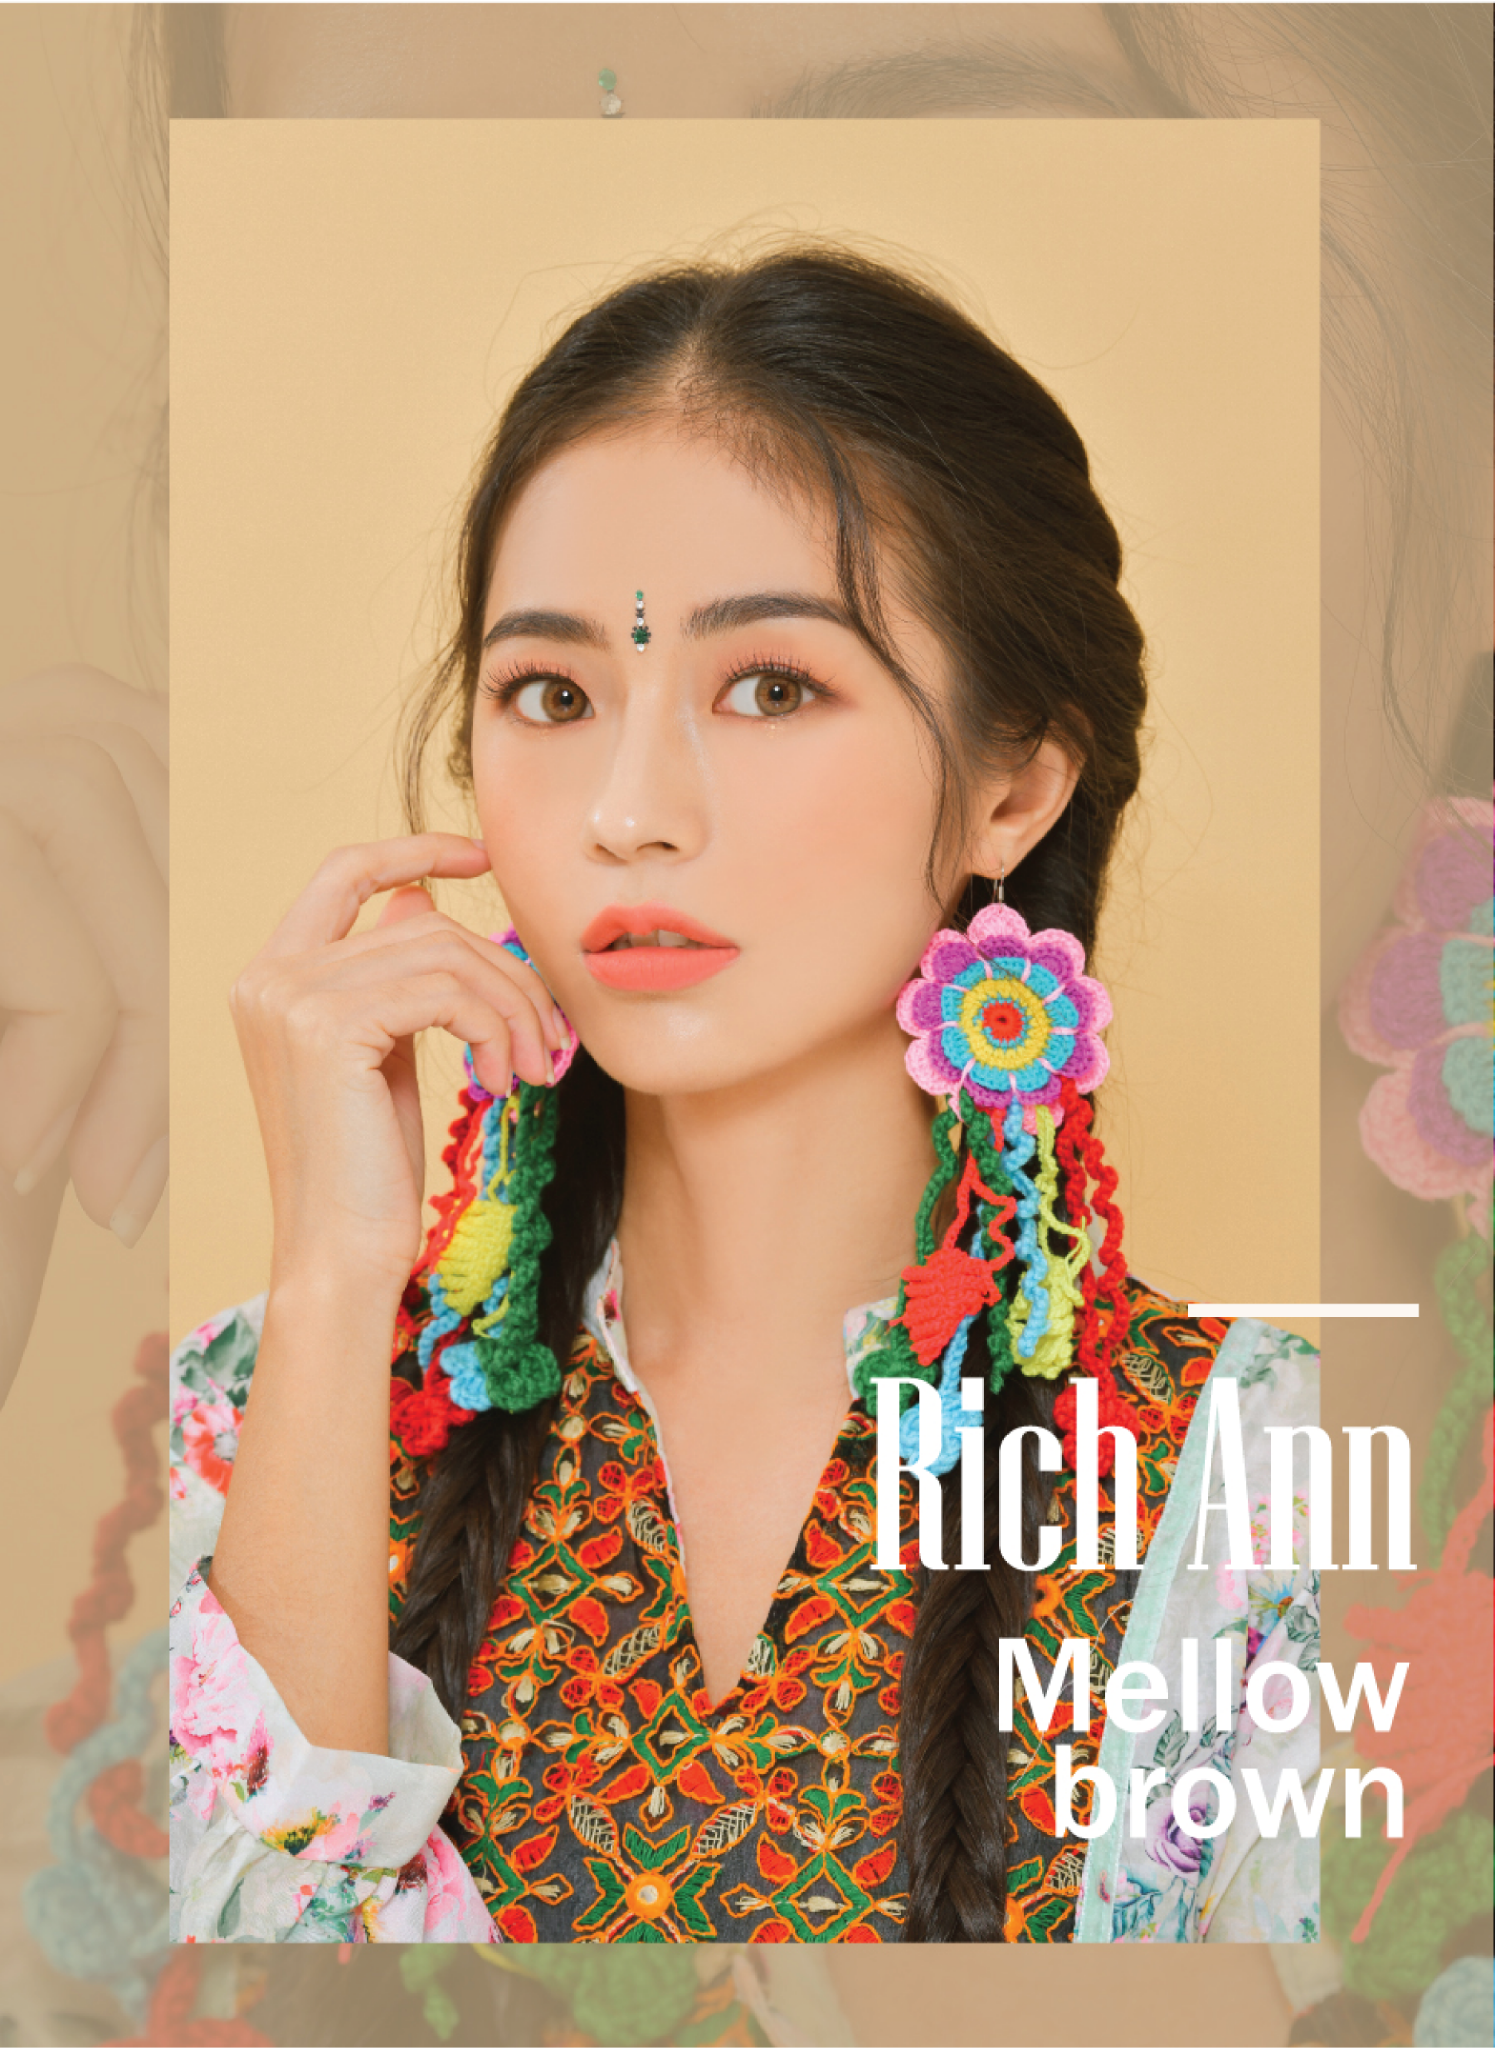 Rich Ann Mellow Brown